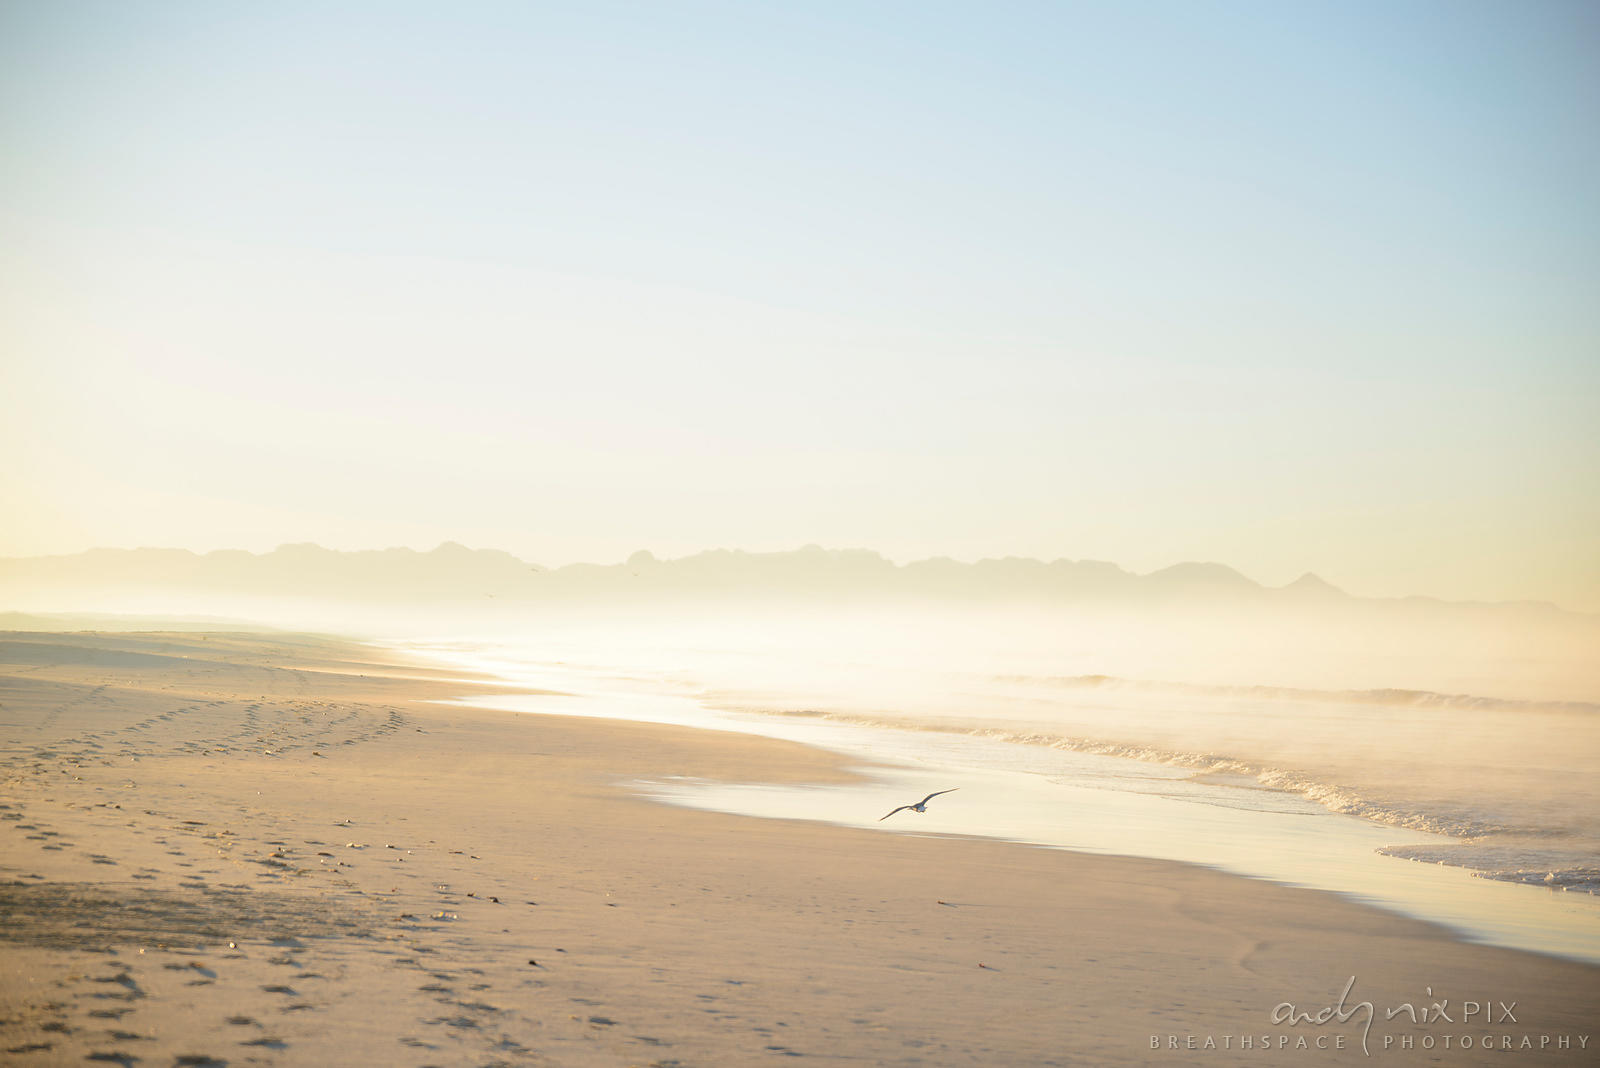 Mist rising from the sand and waves on the beach at sunrise